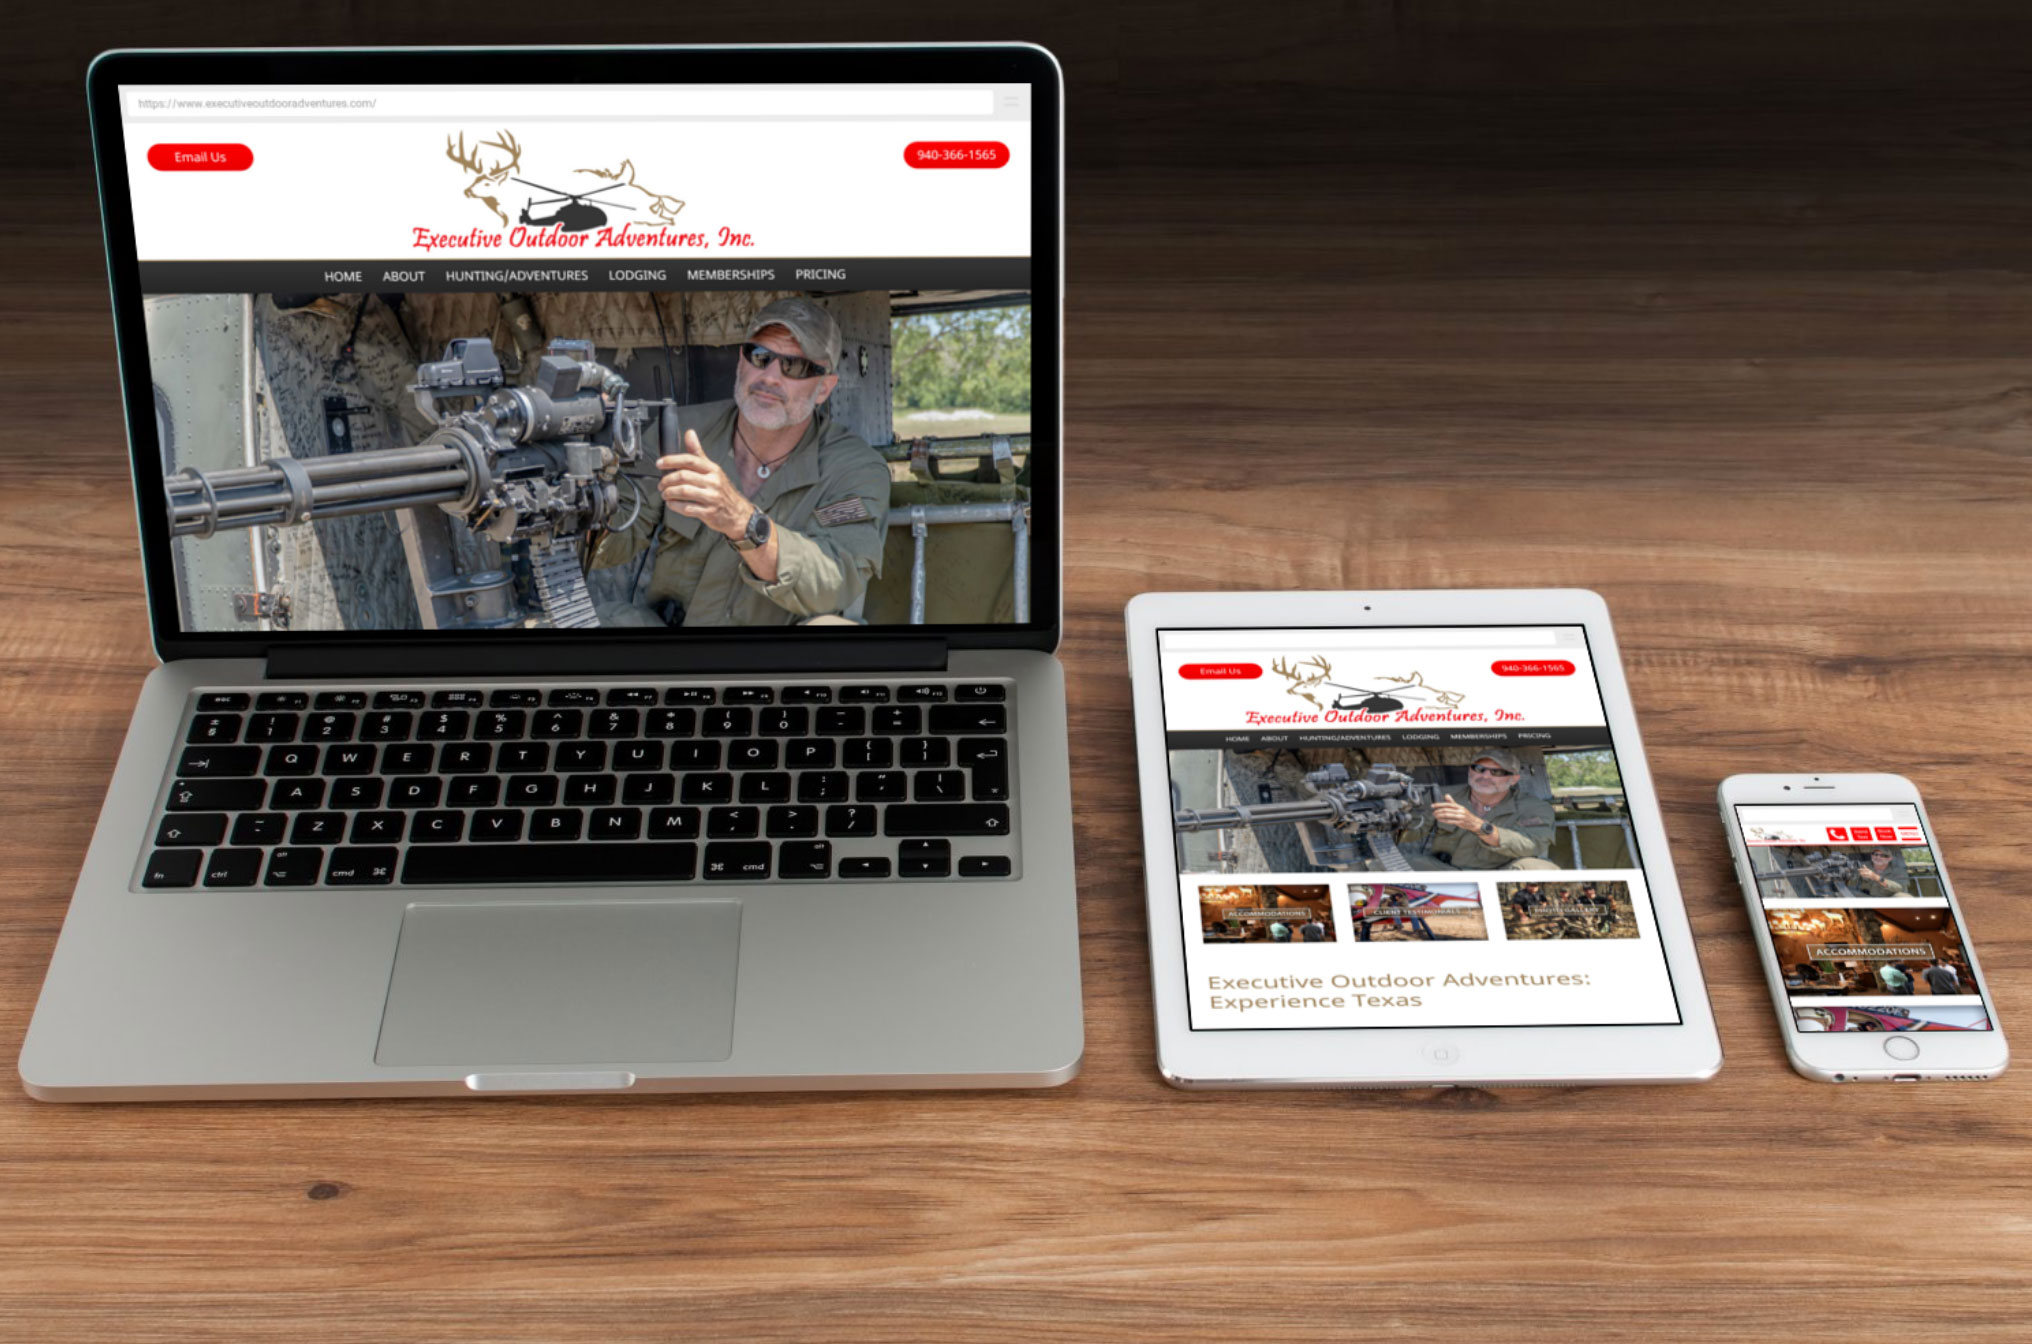 Texas Helicopter Hunting Outfitter